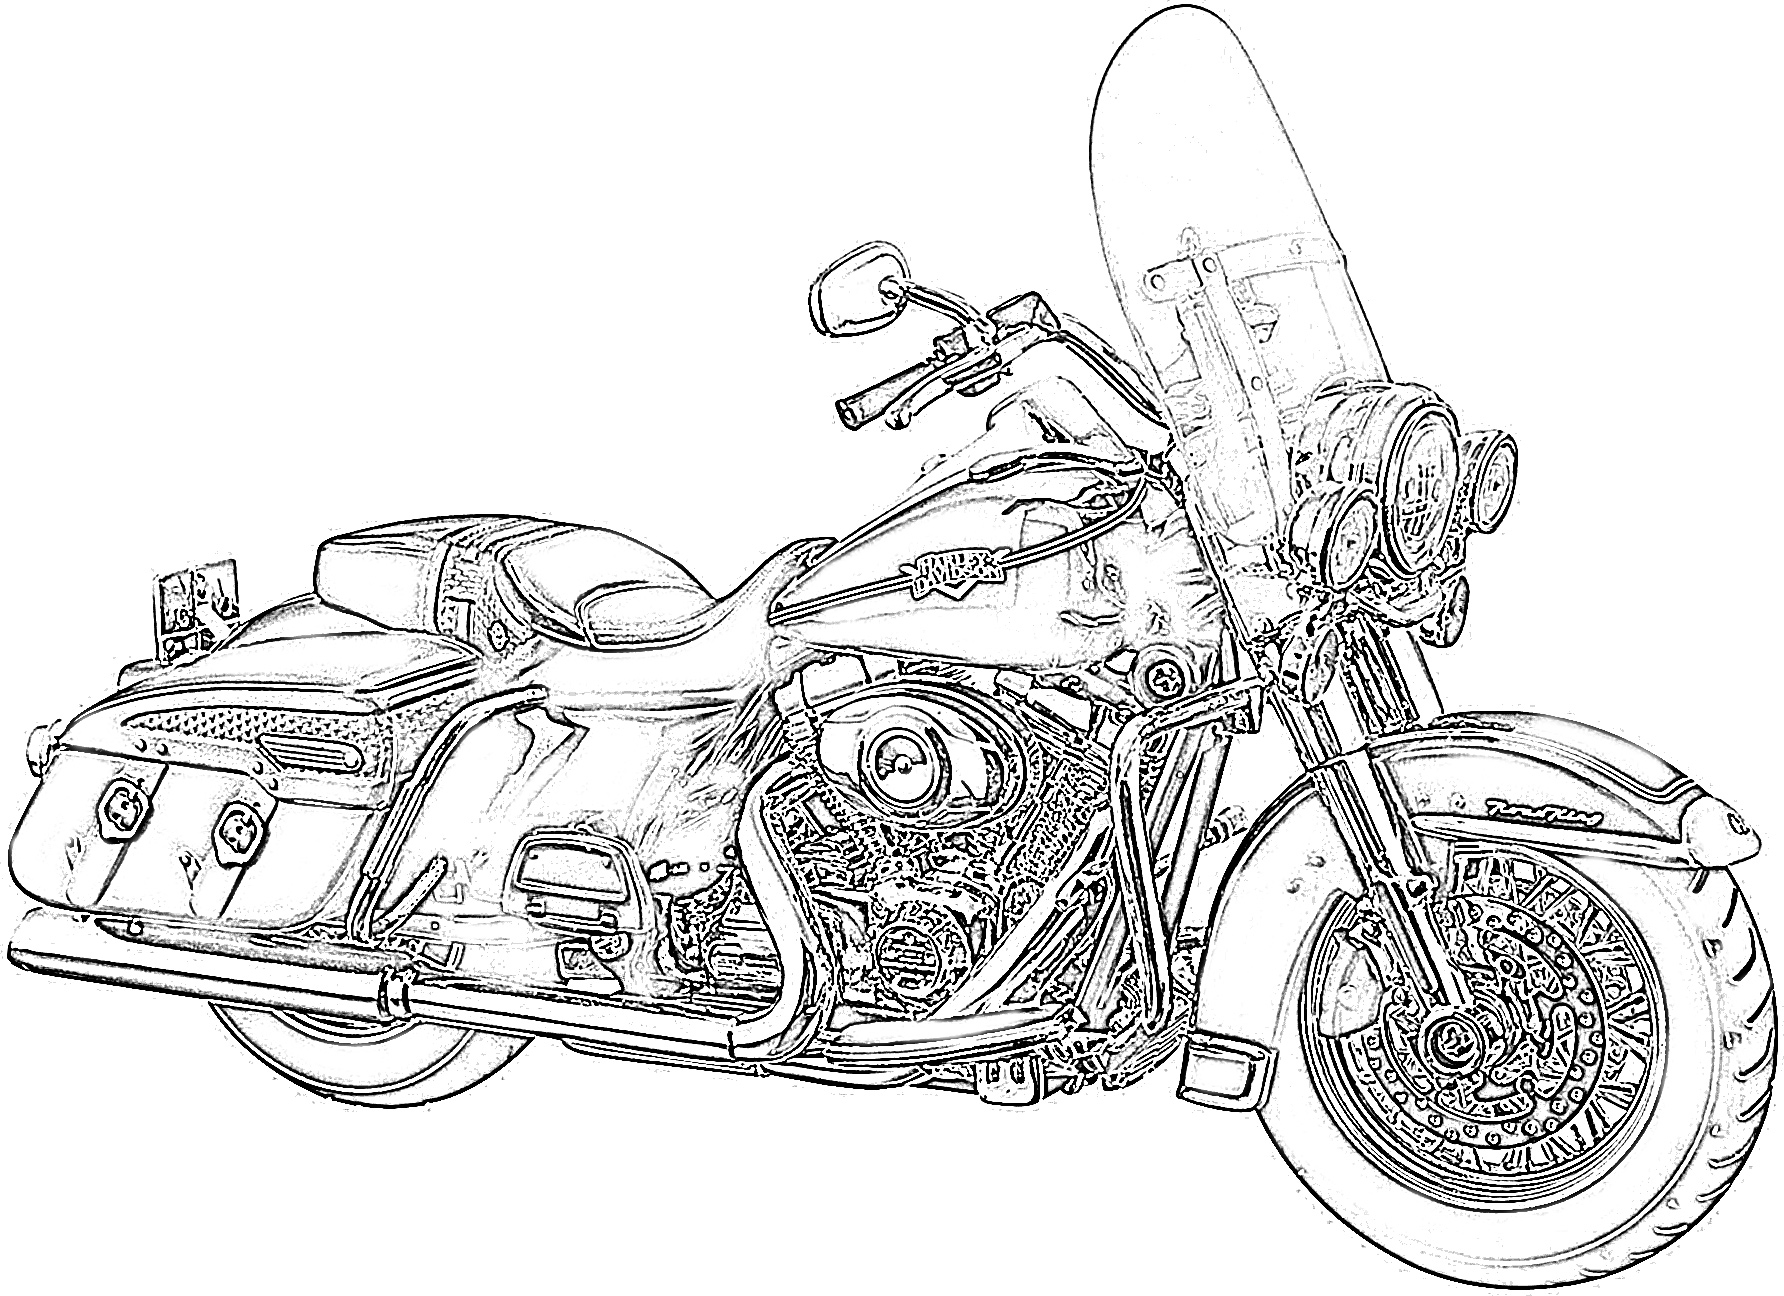 10 Free Harley Davidson Coloring Pages For Kids